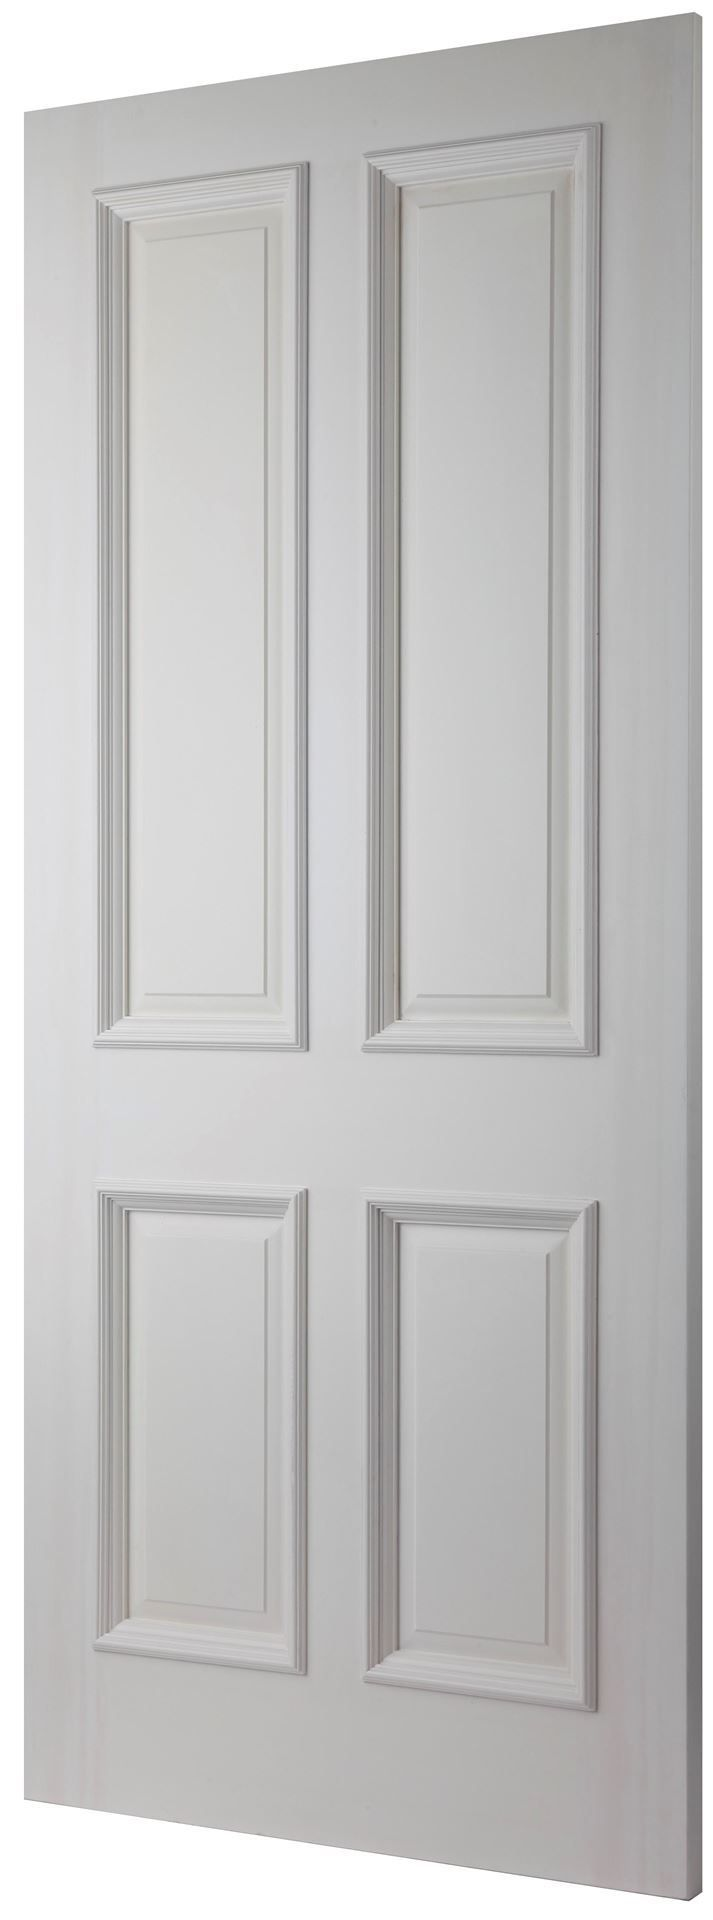 LONDON door is a part of Todd Doors wide range of pre-primed hardwood doors  sc 1 st  Pinterest : todd door - pezcame.com